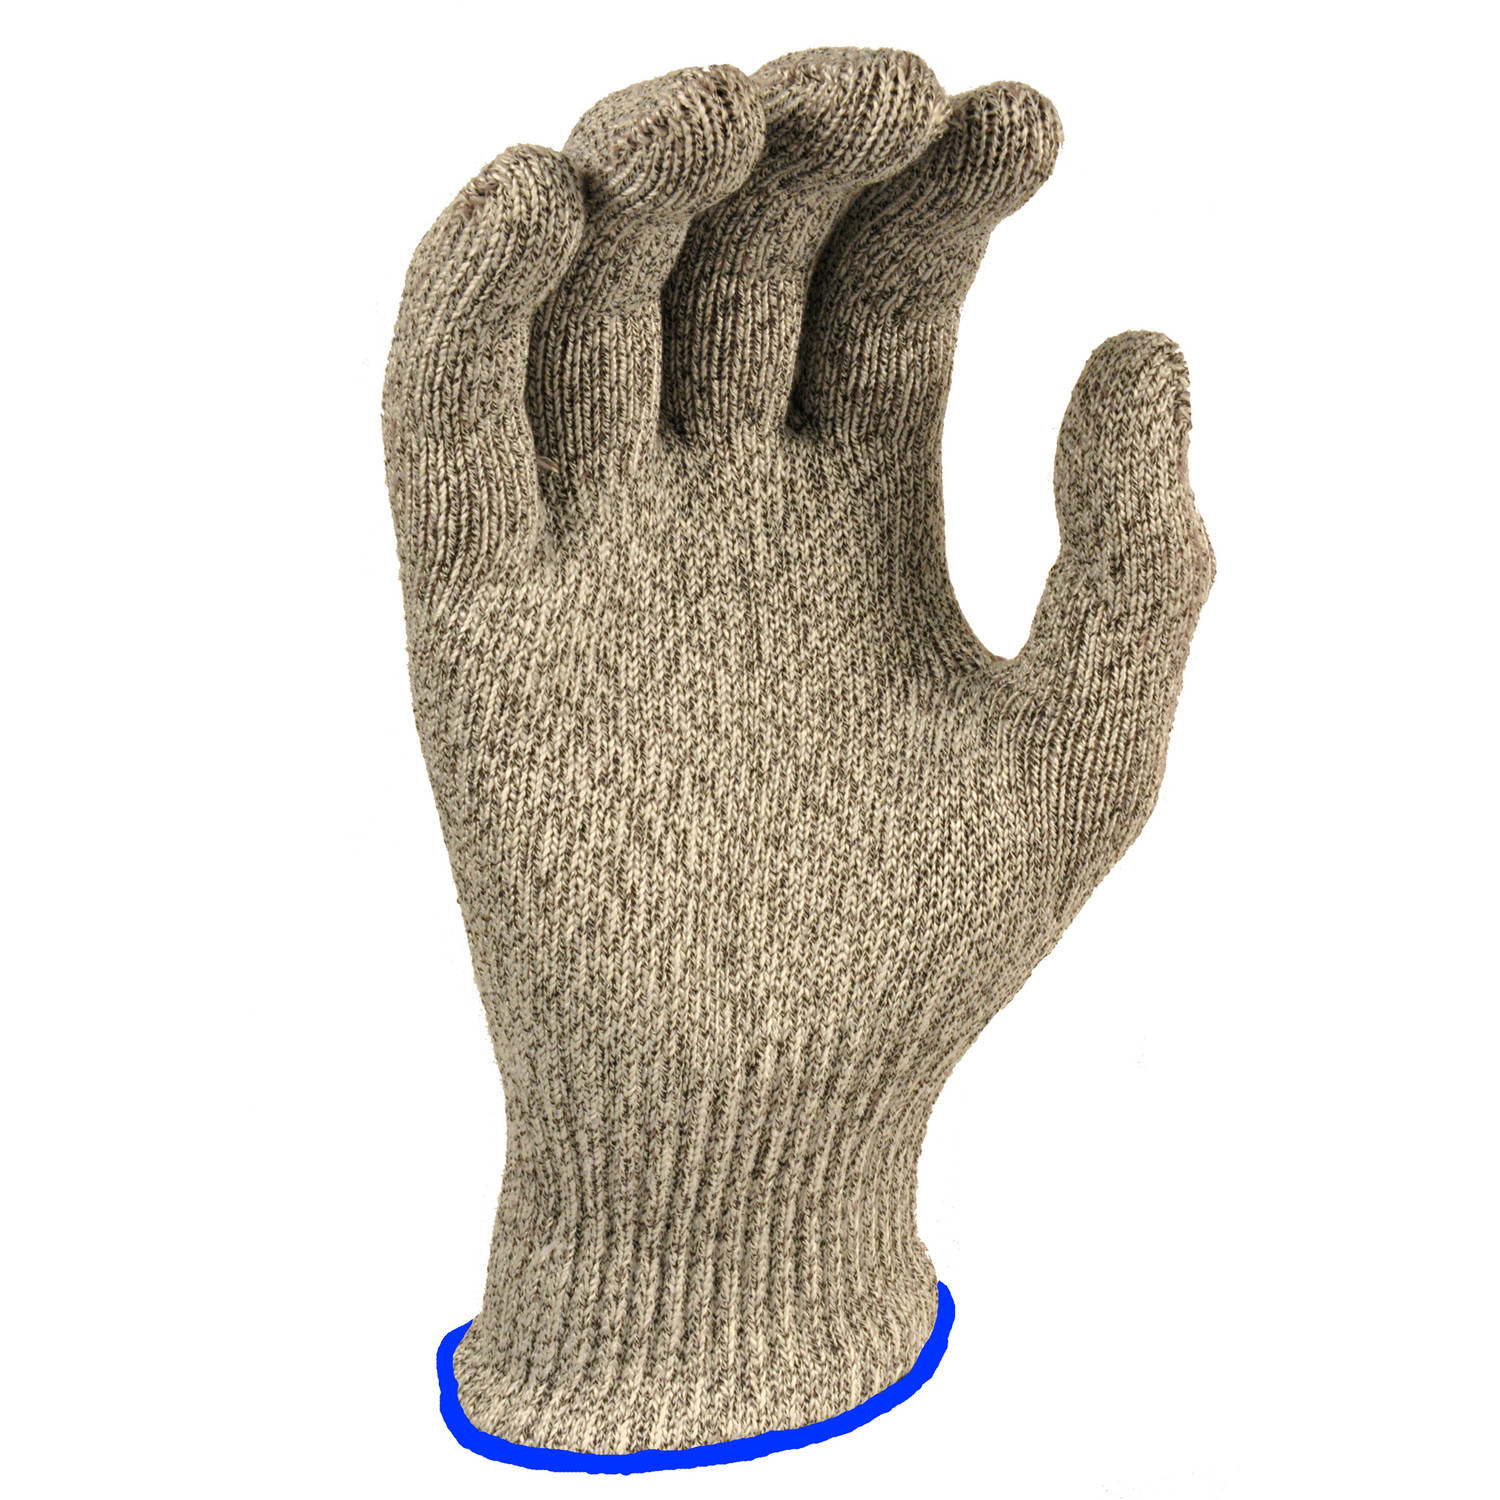 G & F CUTShield Classic Kitchen Cut-Resistant Gloves, Food Contact Safe, Gray, Medium by G & F